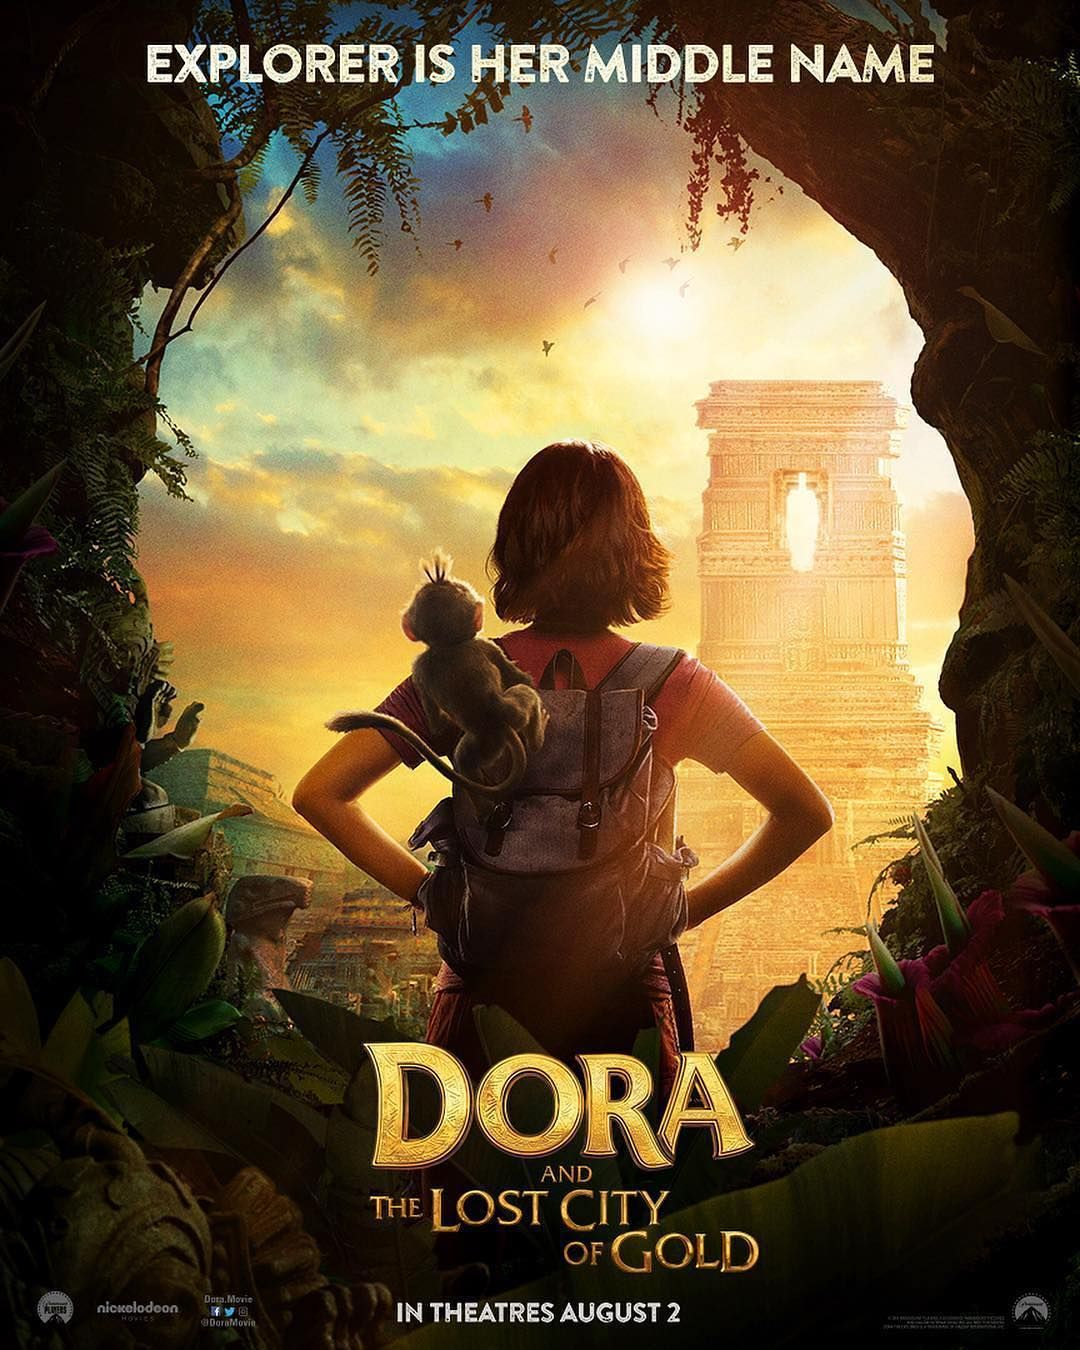 Dora Poster Movies Movie Film Yabancifilm Nickelodeon Lost City Of Gold Gold Movie Action Movie Poster